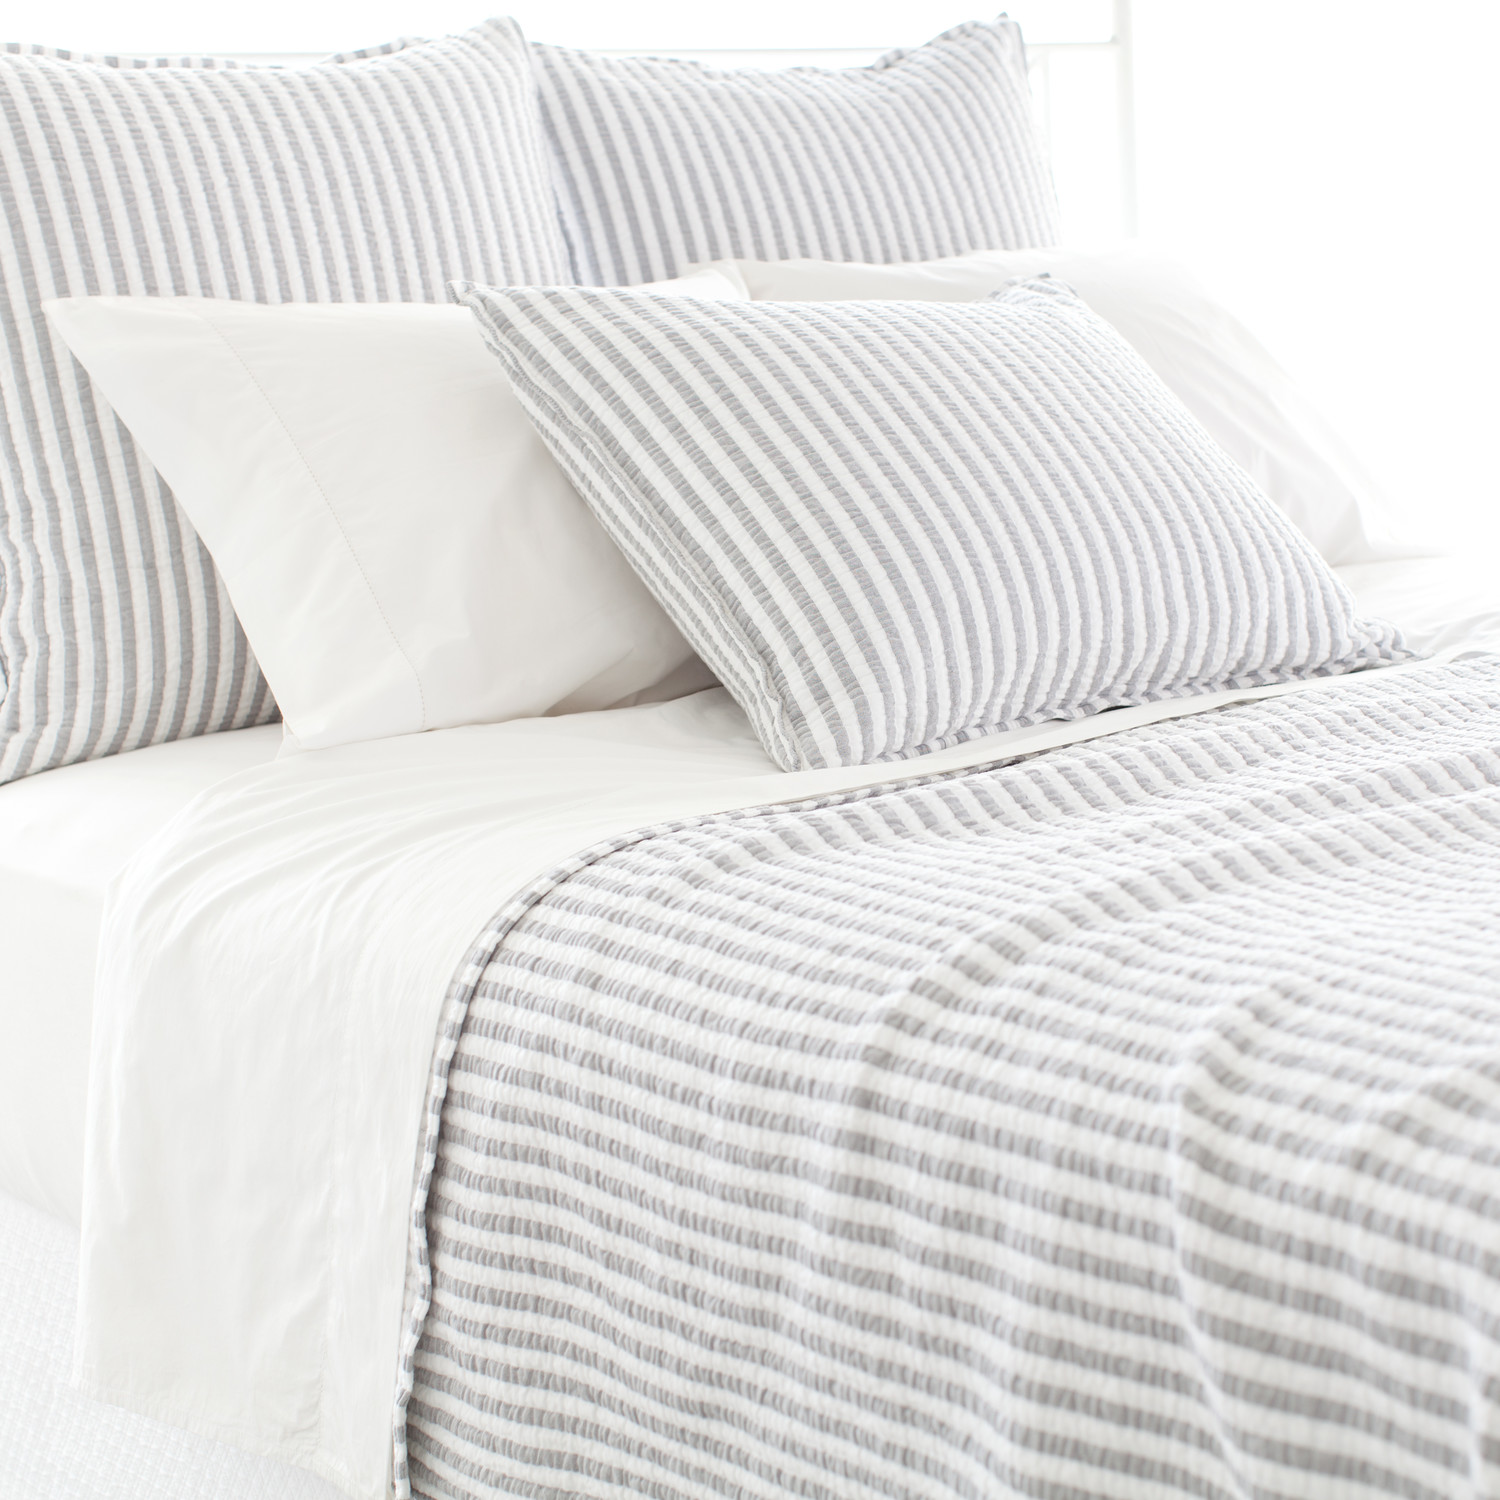 Charming Linen Pine Cone Hill Bedding In Blue White Stripped Pattern For Bed Ideas